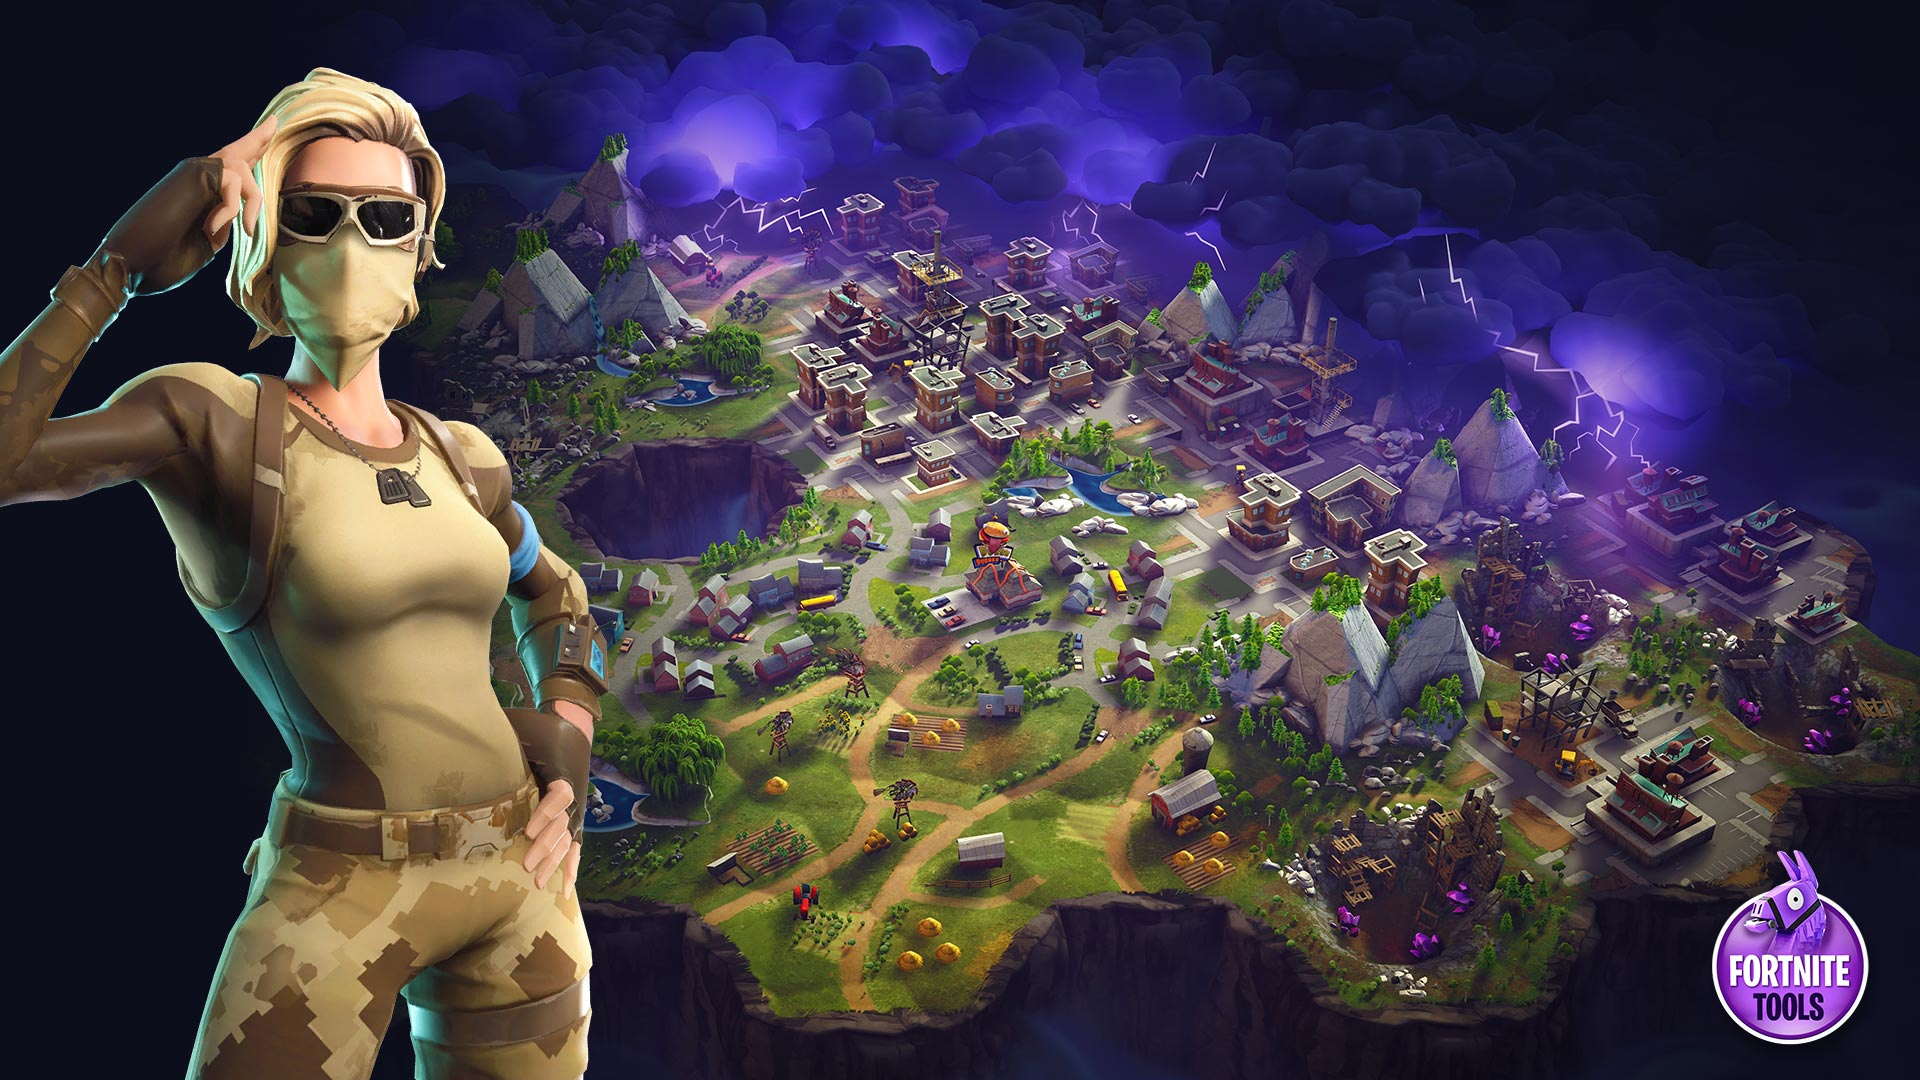 Fortnite Wallpaper Download High Quality Wallpaper Pngs Icons